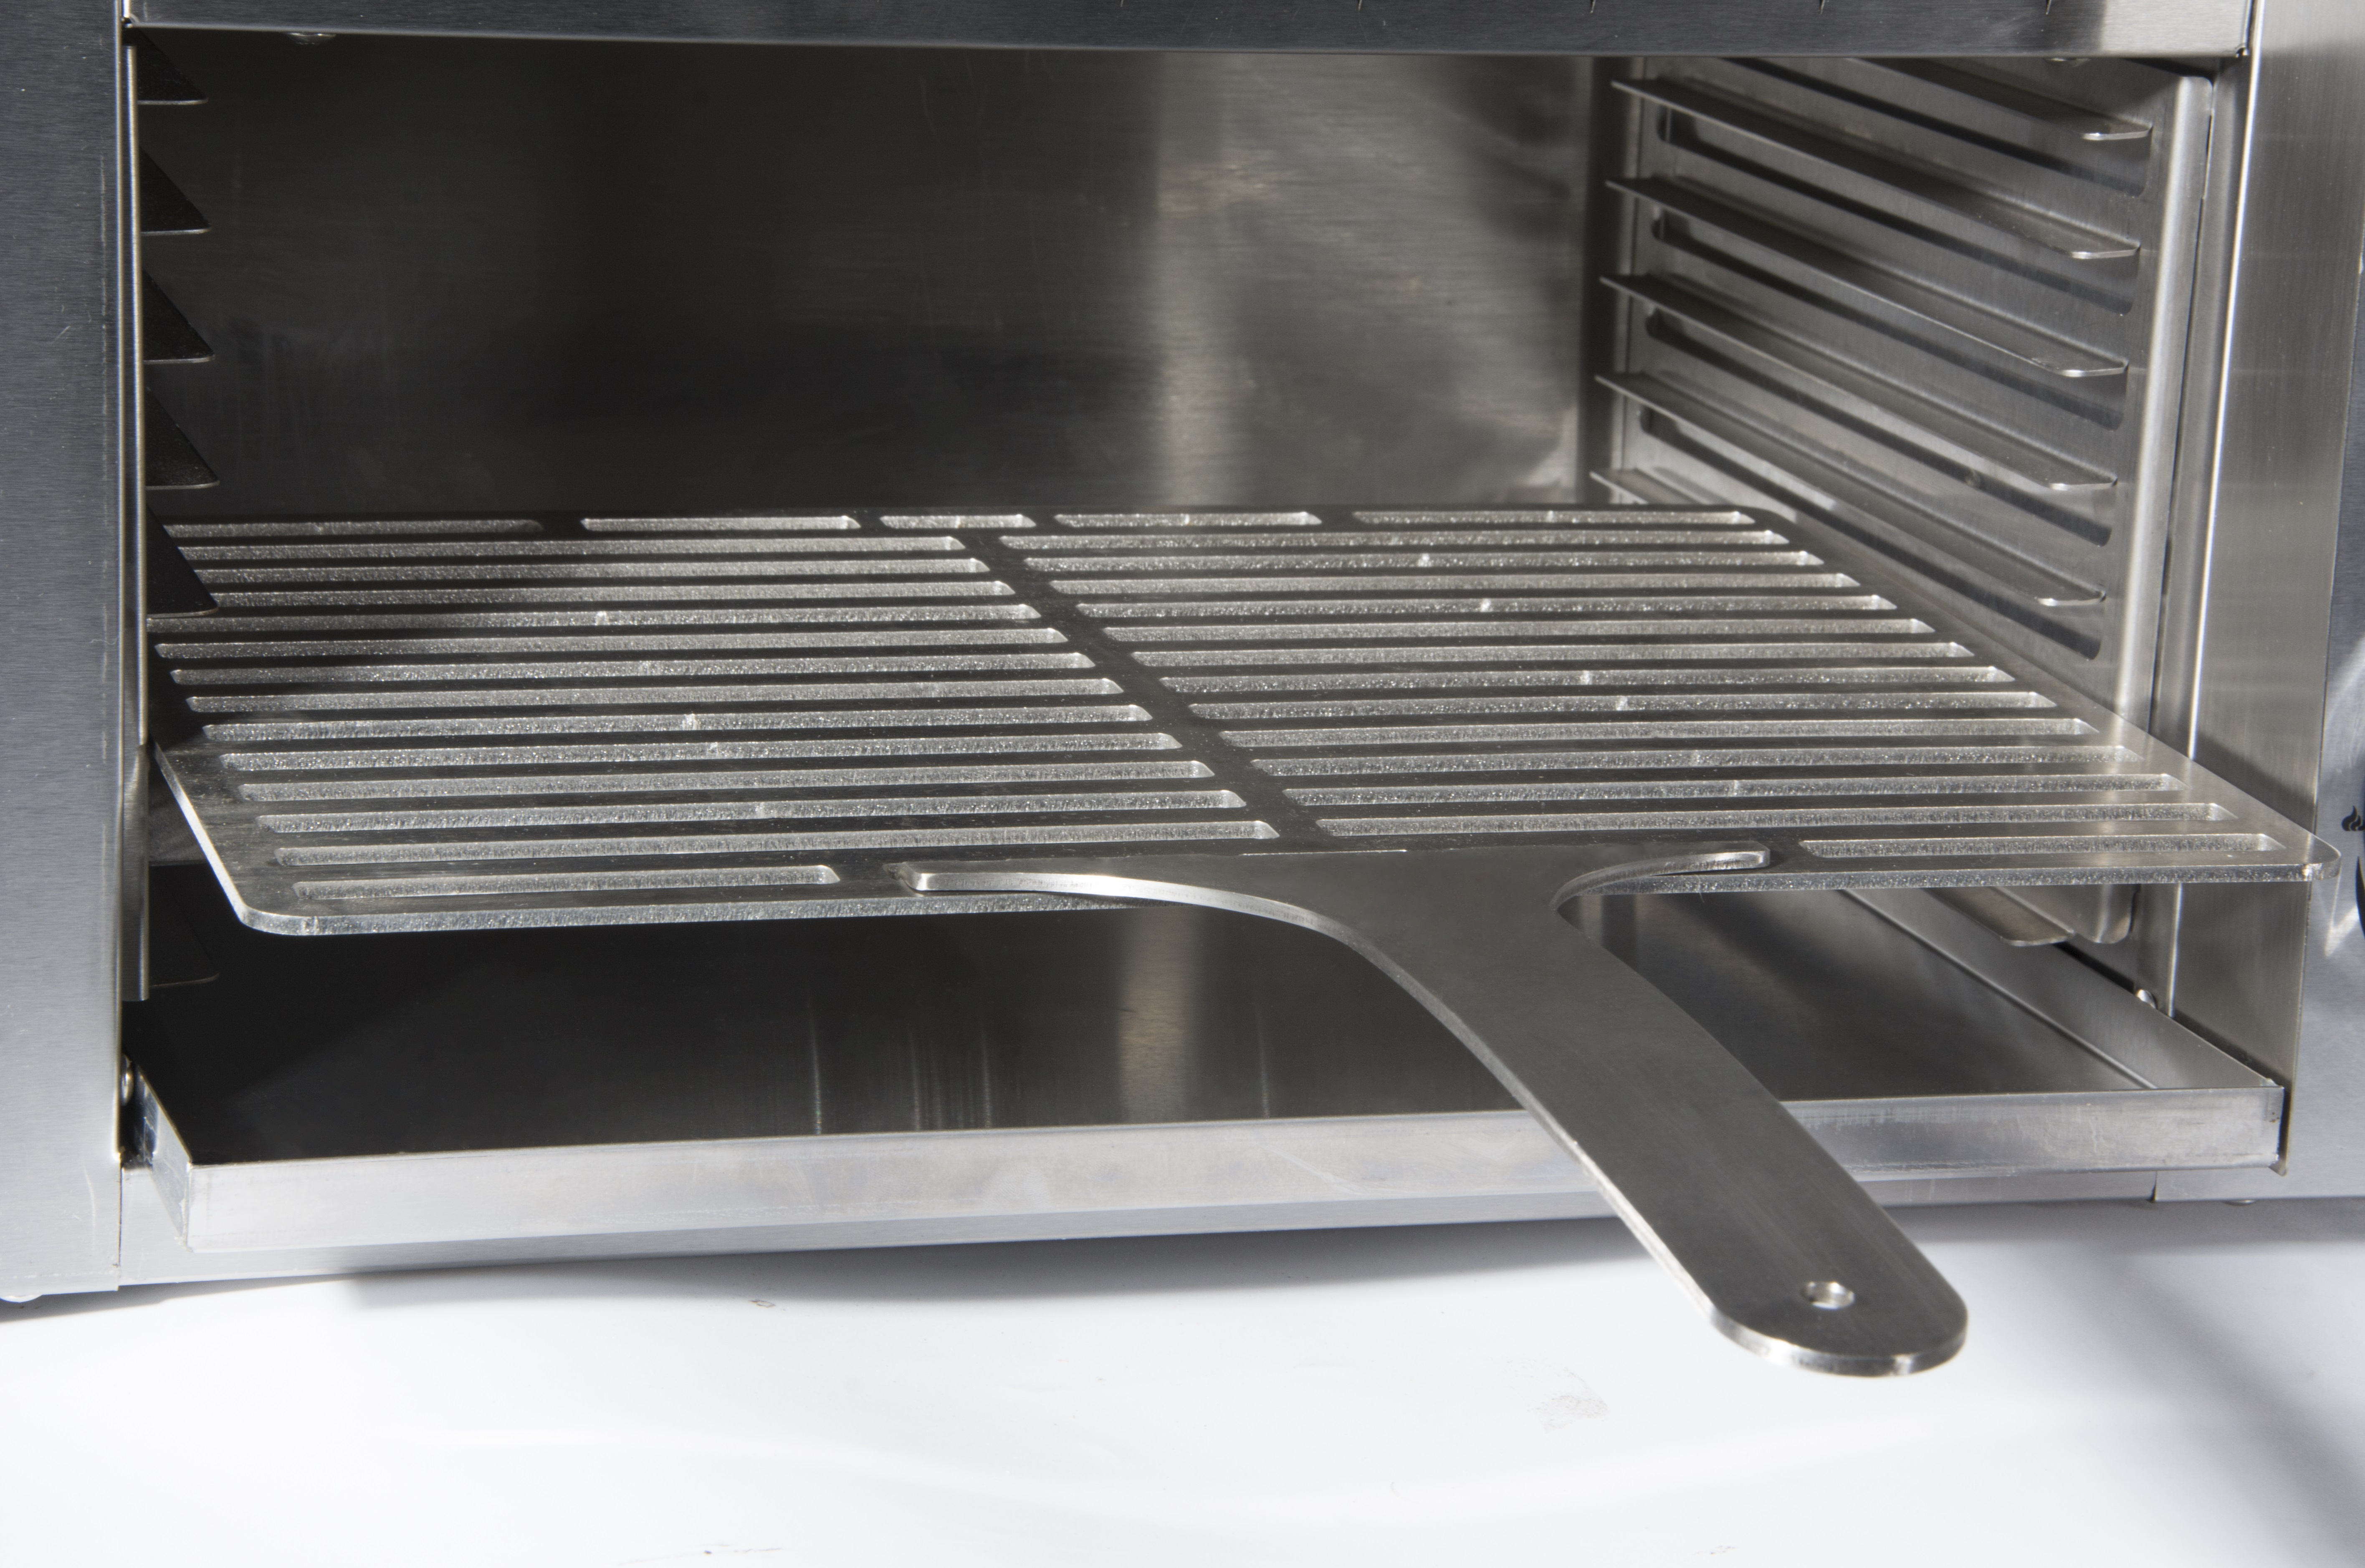 Stainless Steel Gas Beef Maker